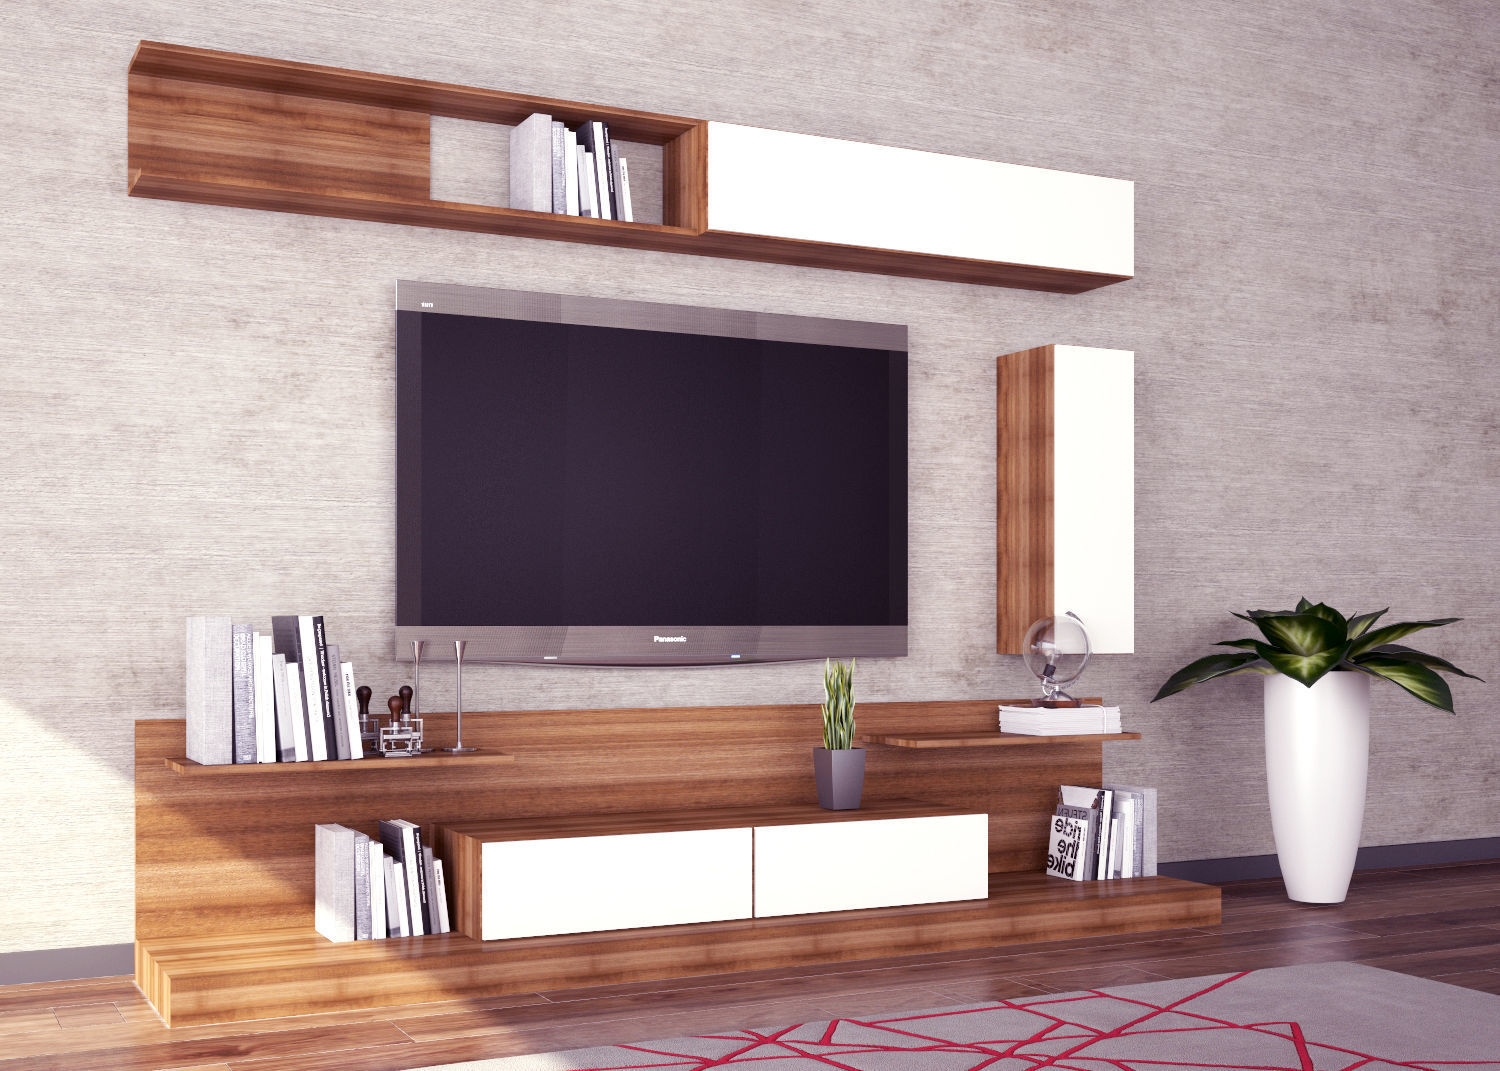 Modern Tv Modern Tv Unit Design 3d Model 3d Model